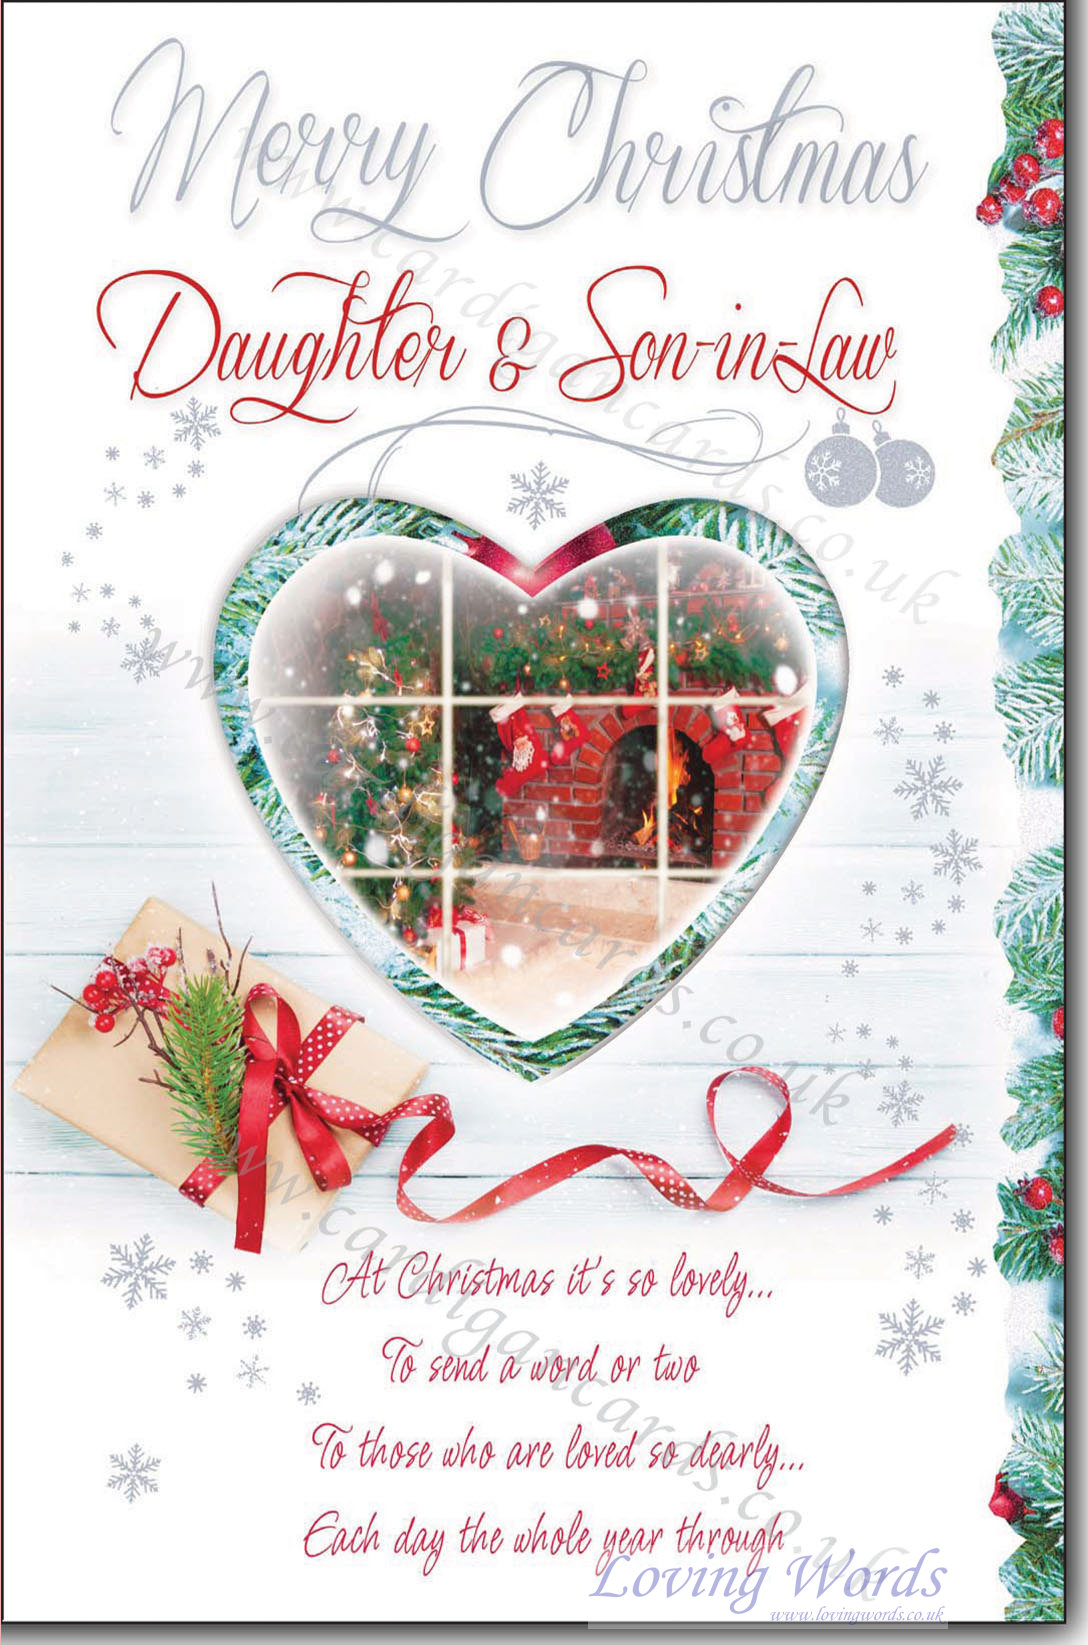 personalised greeting cards - Merry Christmas Daughter